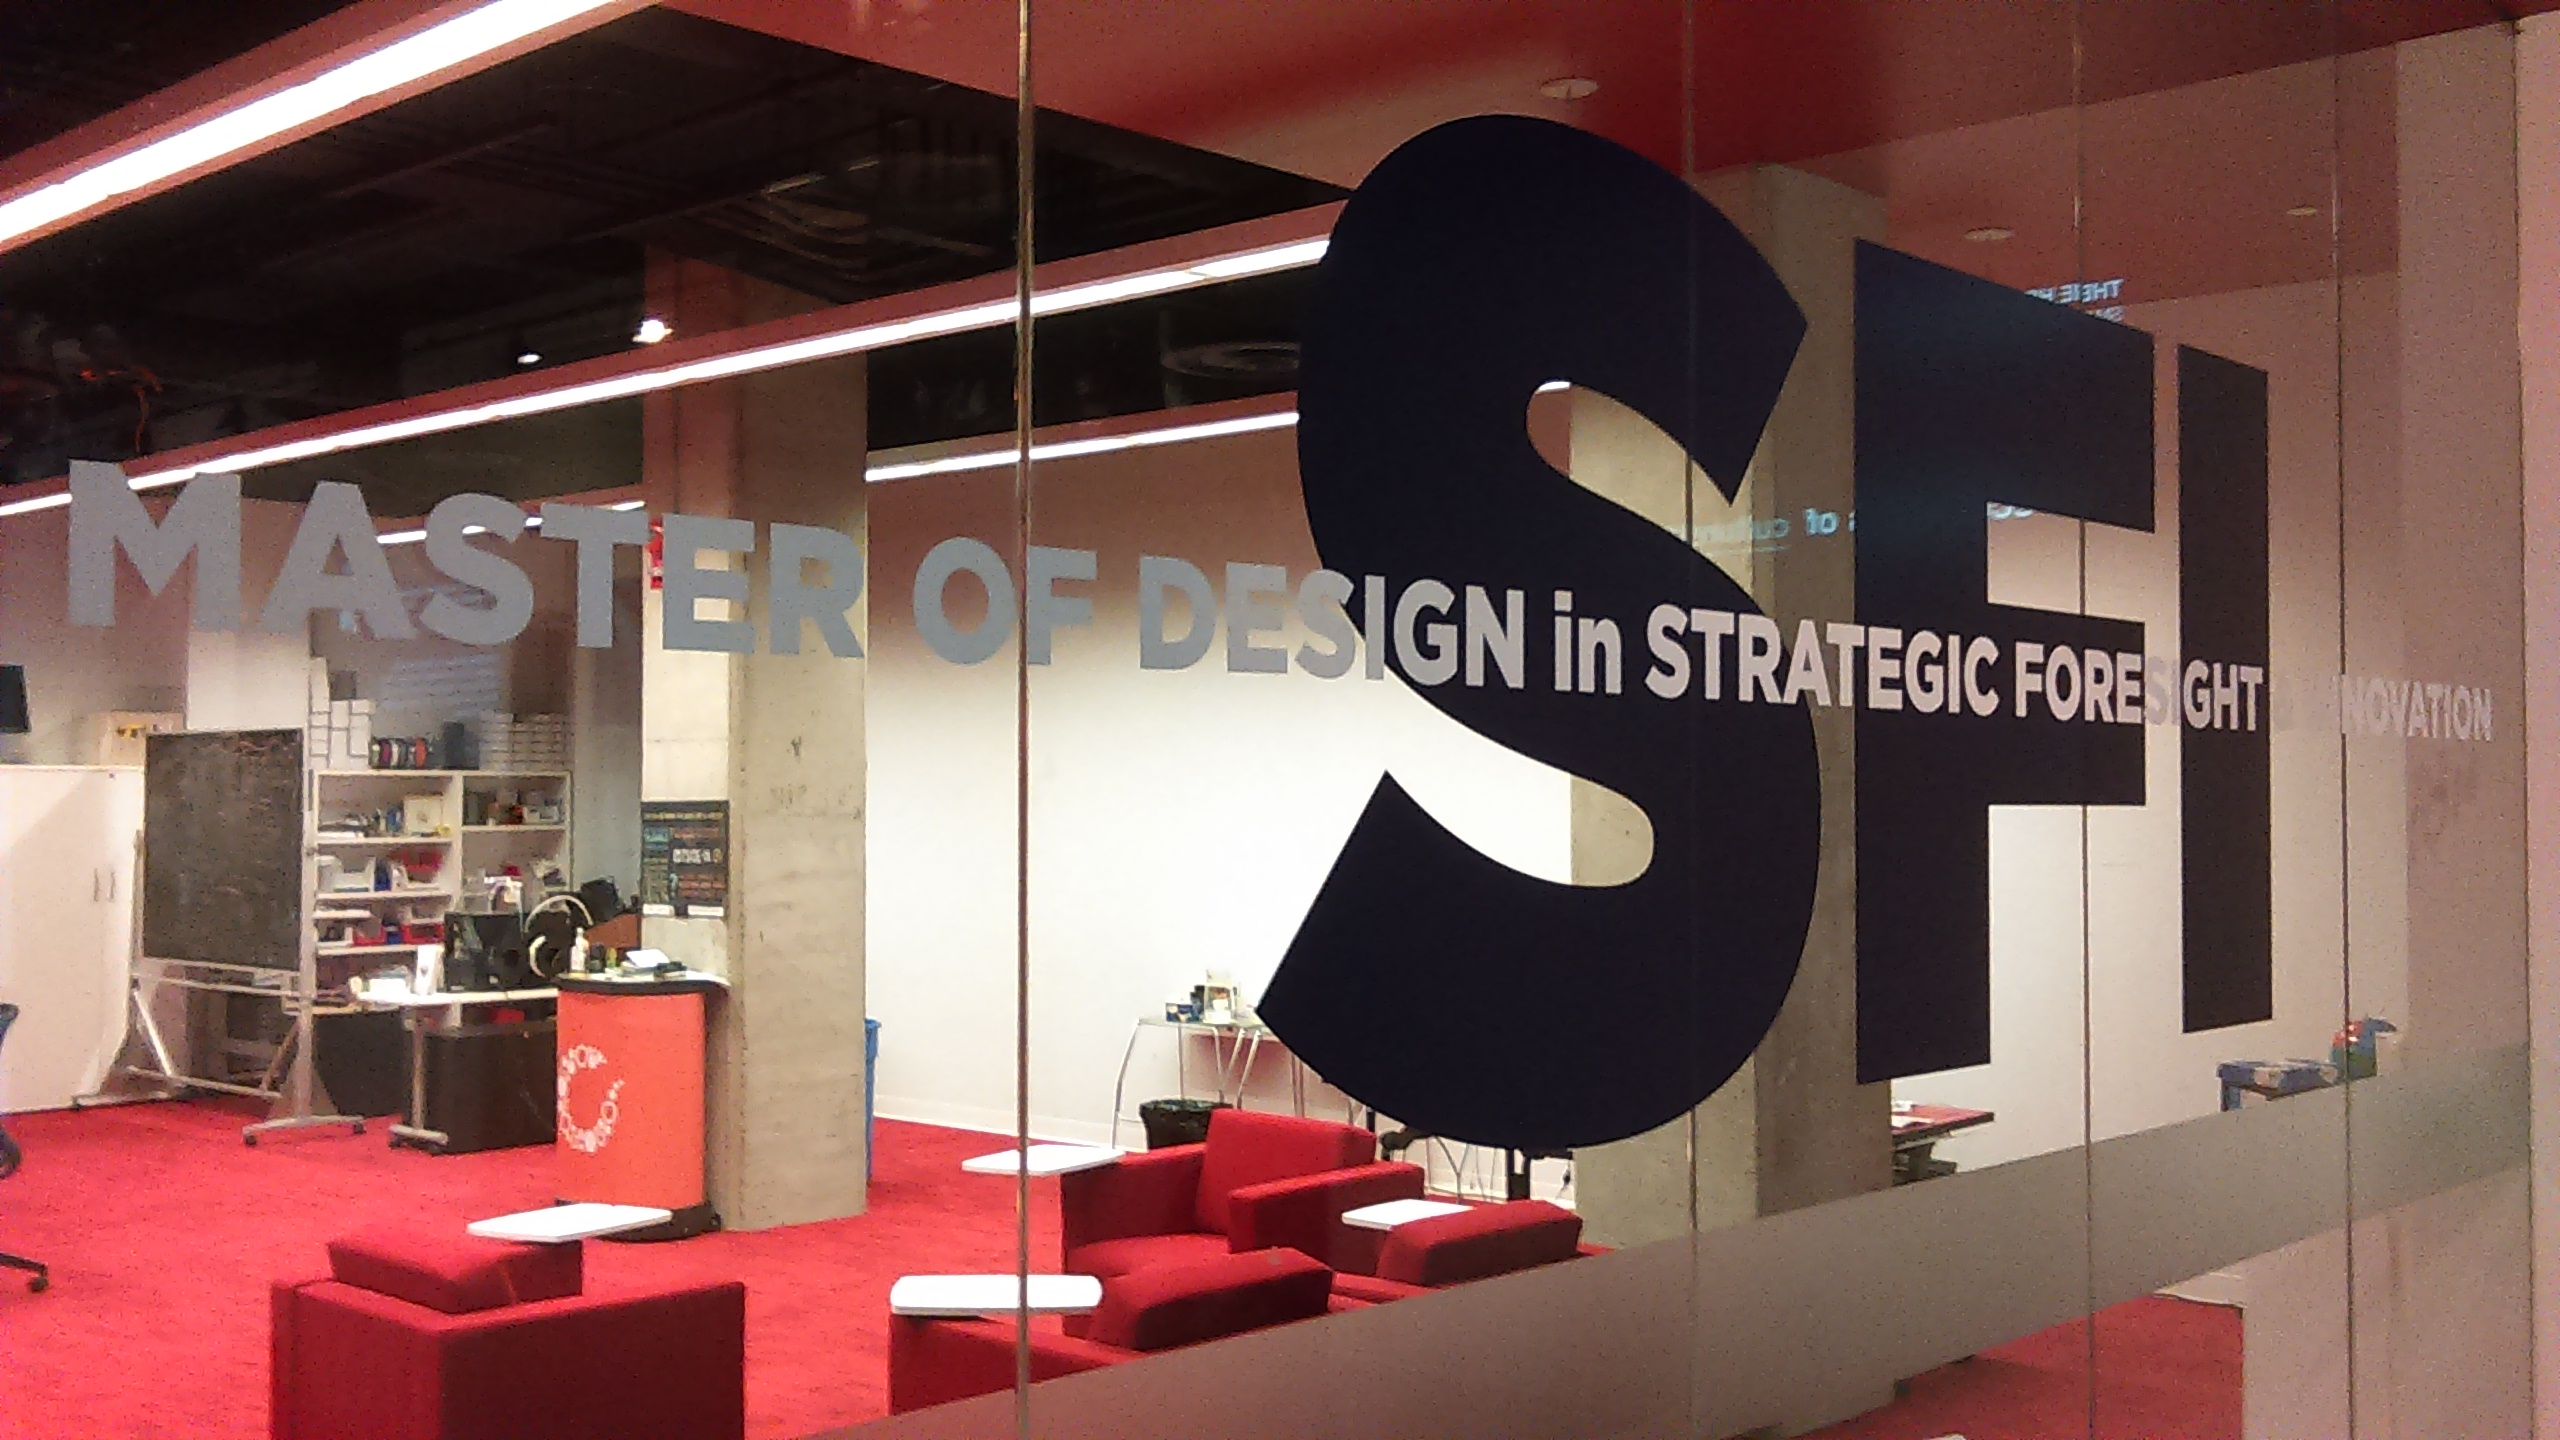 Master of Design in Strategic Foresight and Innovation